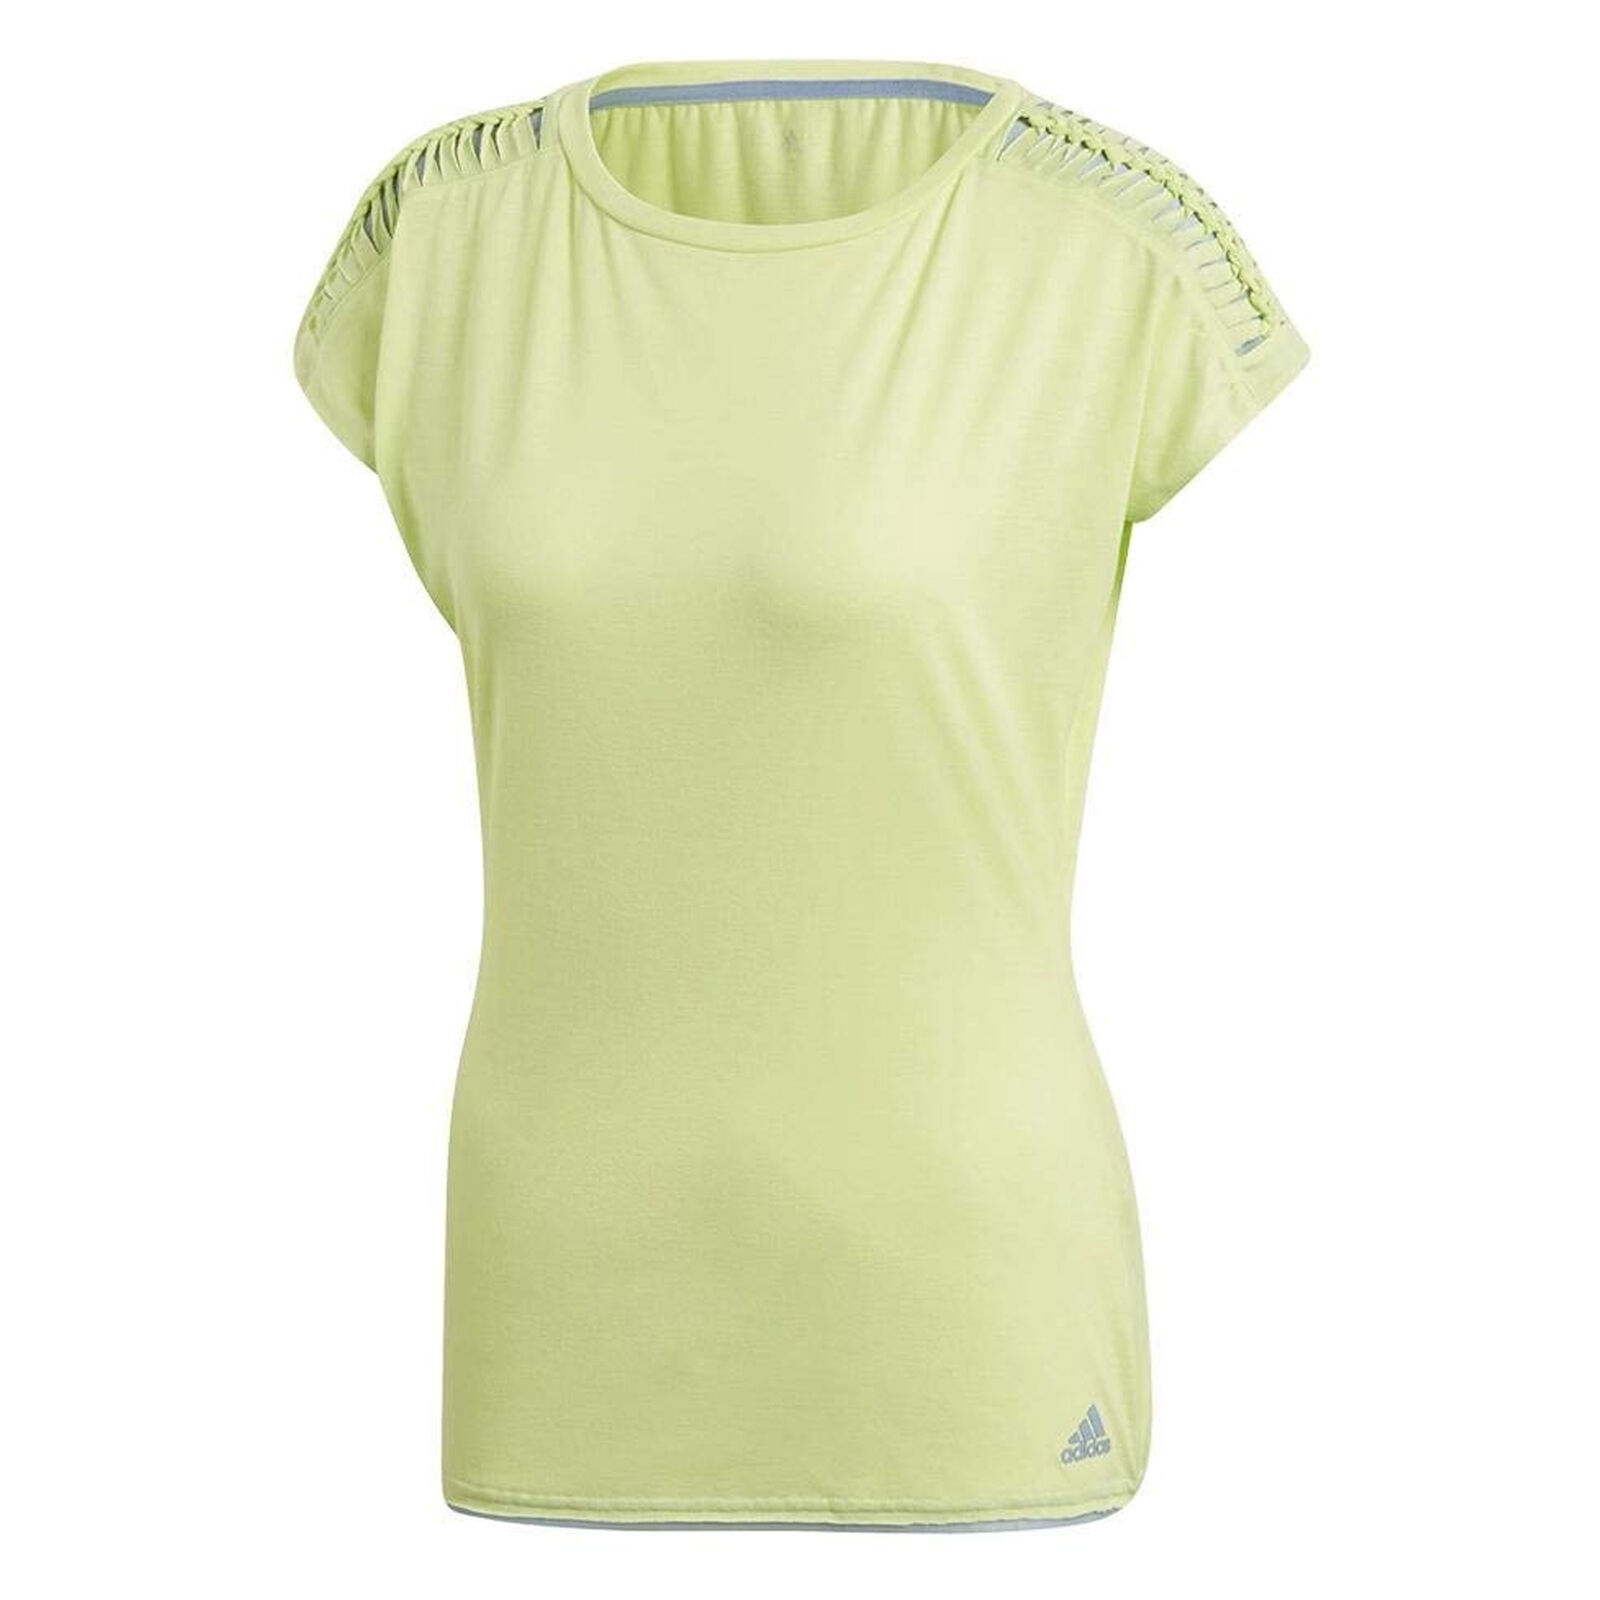 Adidas Womens Melbourne Line Climacool Breathable Lightweight Tennis T-Shirt